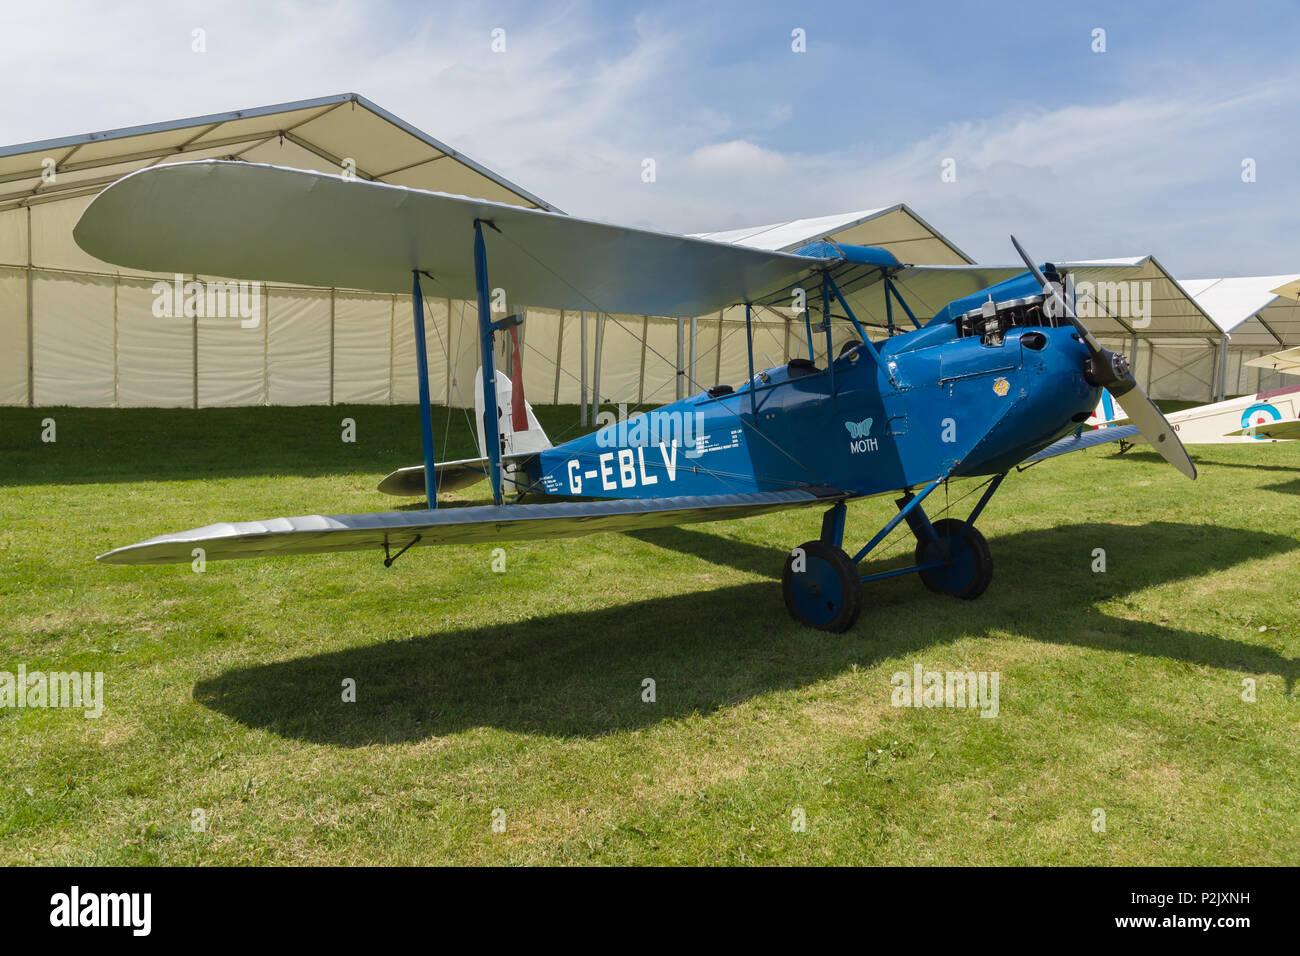 De Havilland DH60 Cirrus Moth G-EBLV a two seat propellor driven biplane. Built in 1925 as a civilian light aircraft - Stock Image